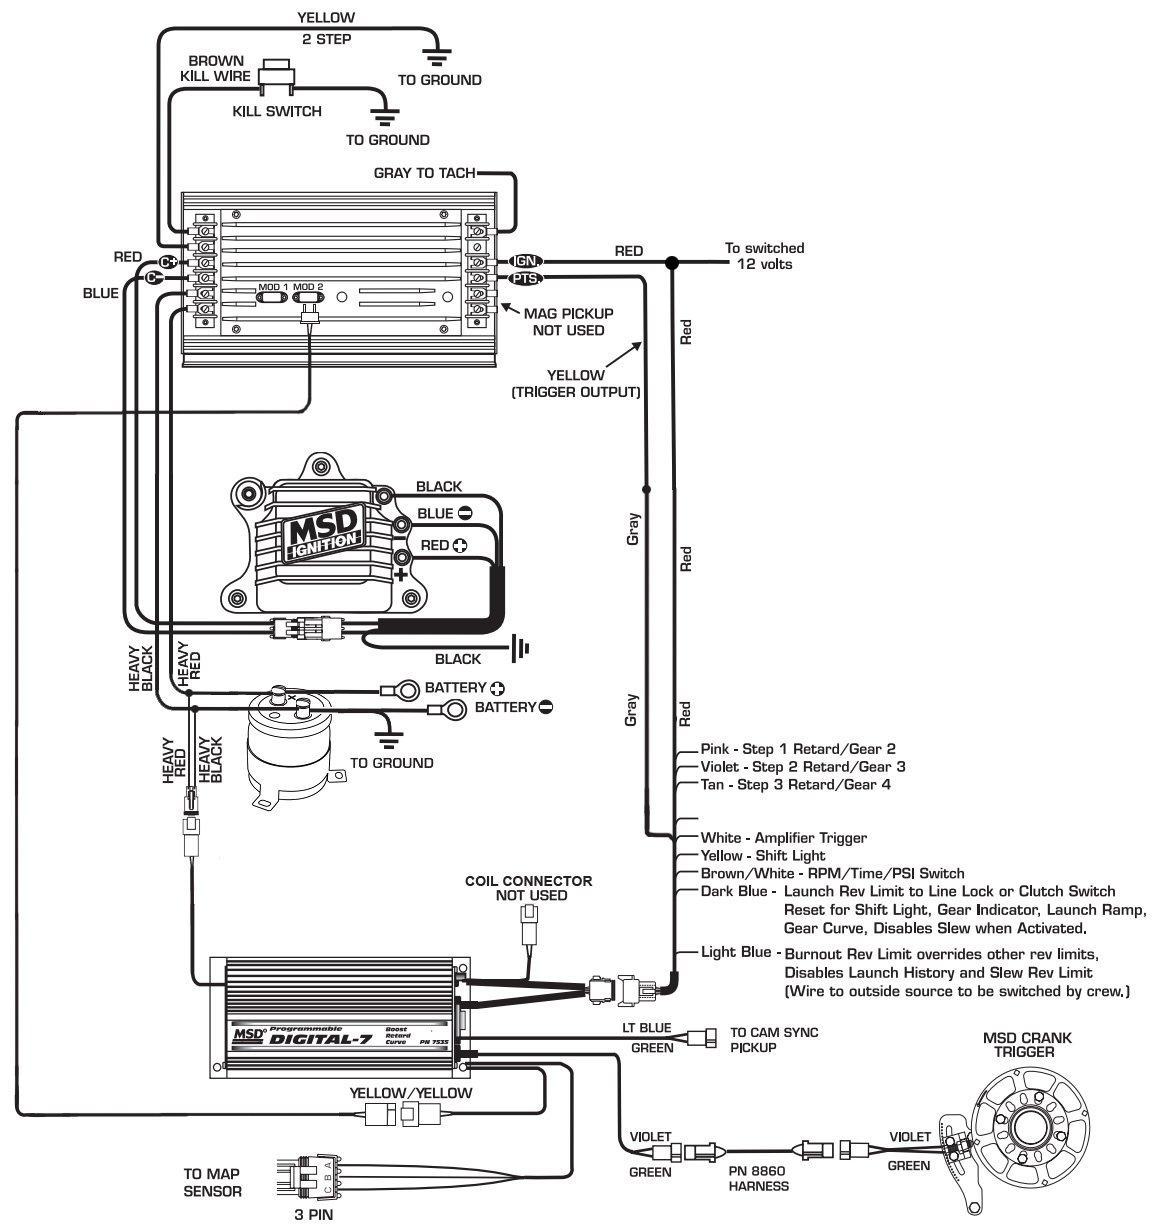 msd 2 step wiring diagram msd image wiring diagram msd two step wiring diagram wire diagram on msd 2 step wiring diagram